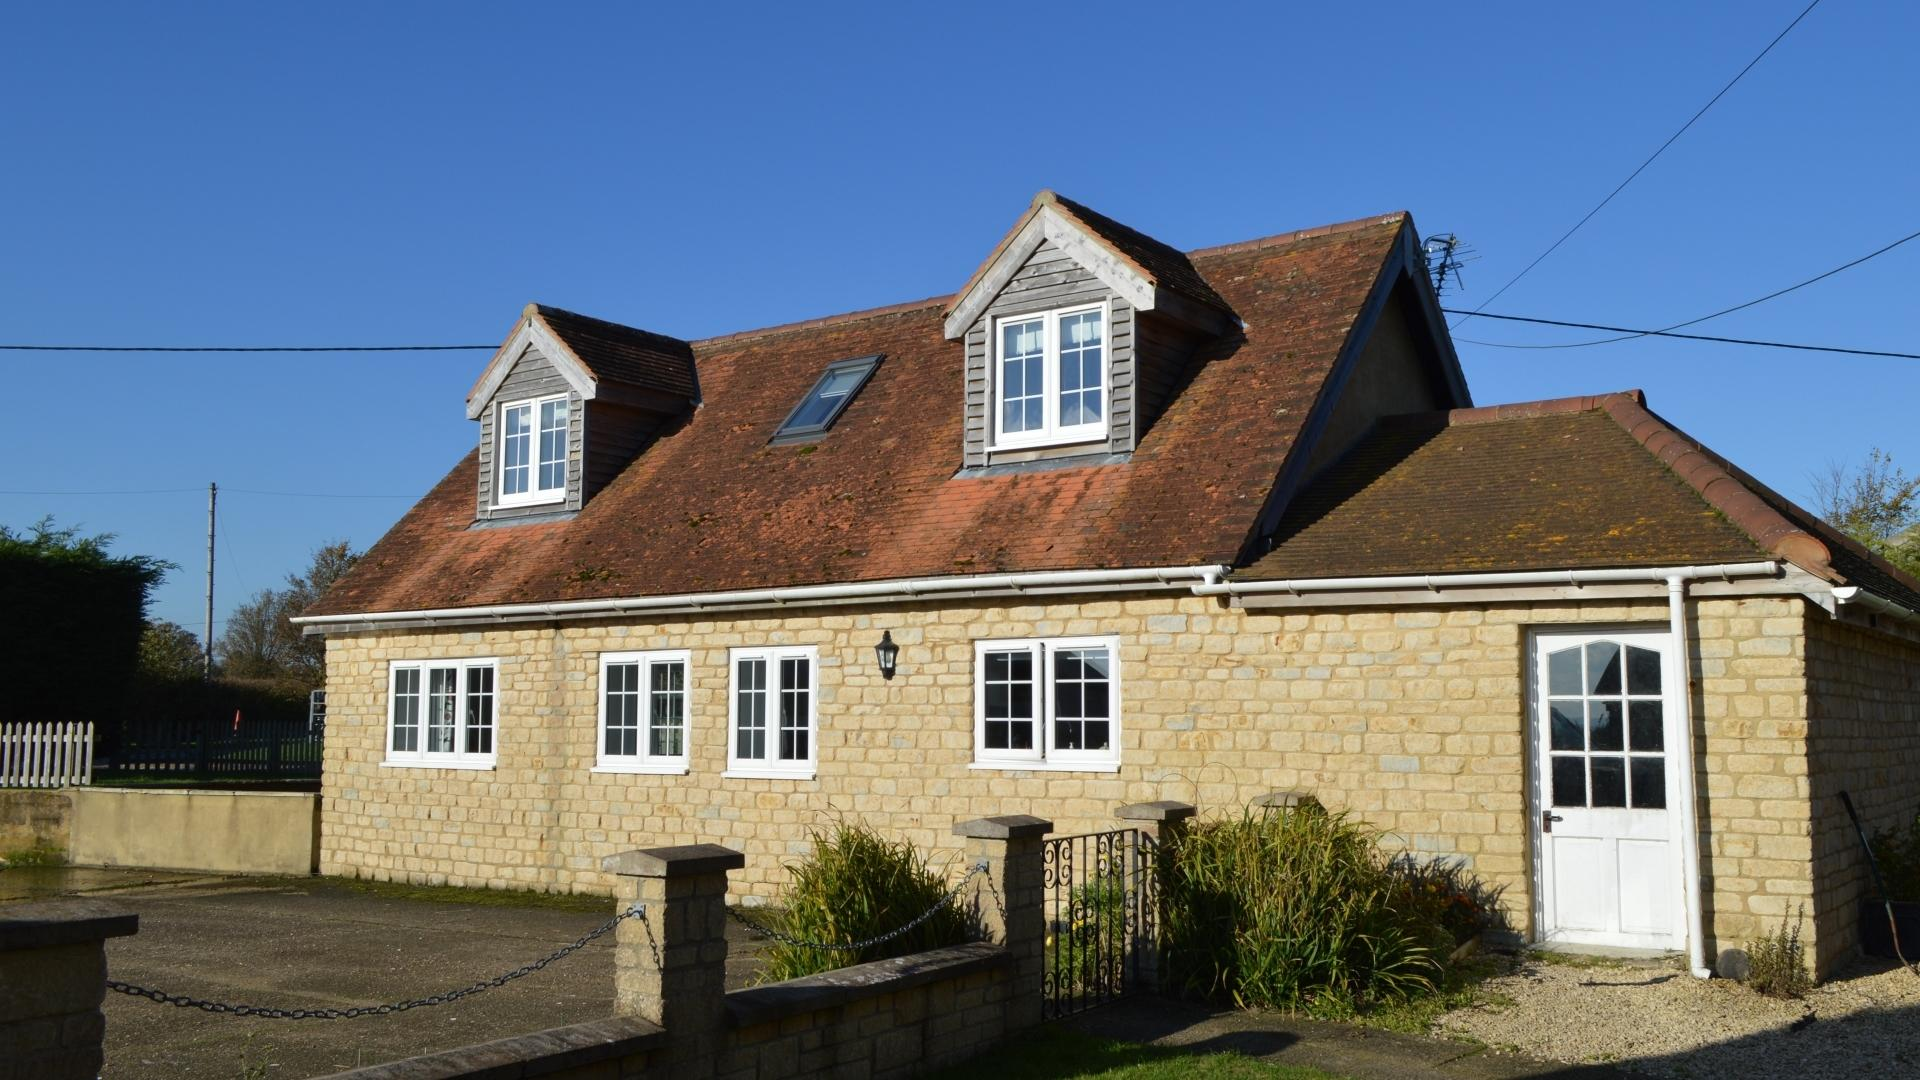 2 Bedroom Private cottage/shared facilities in Dorset, United Kingdom